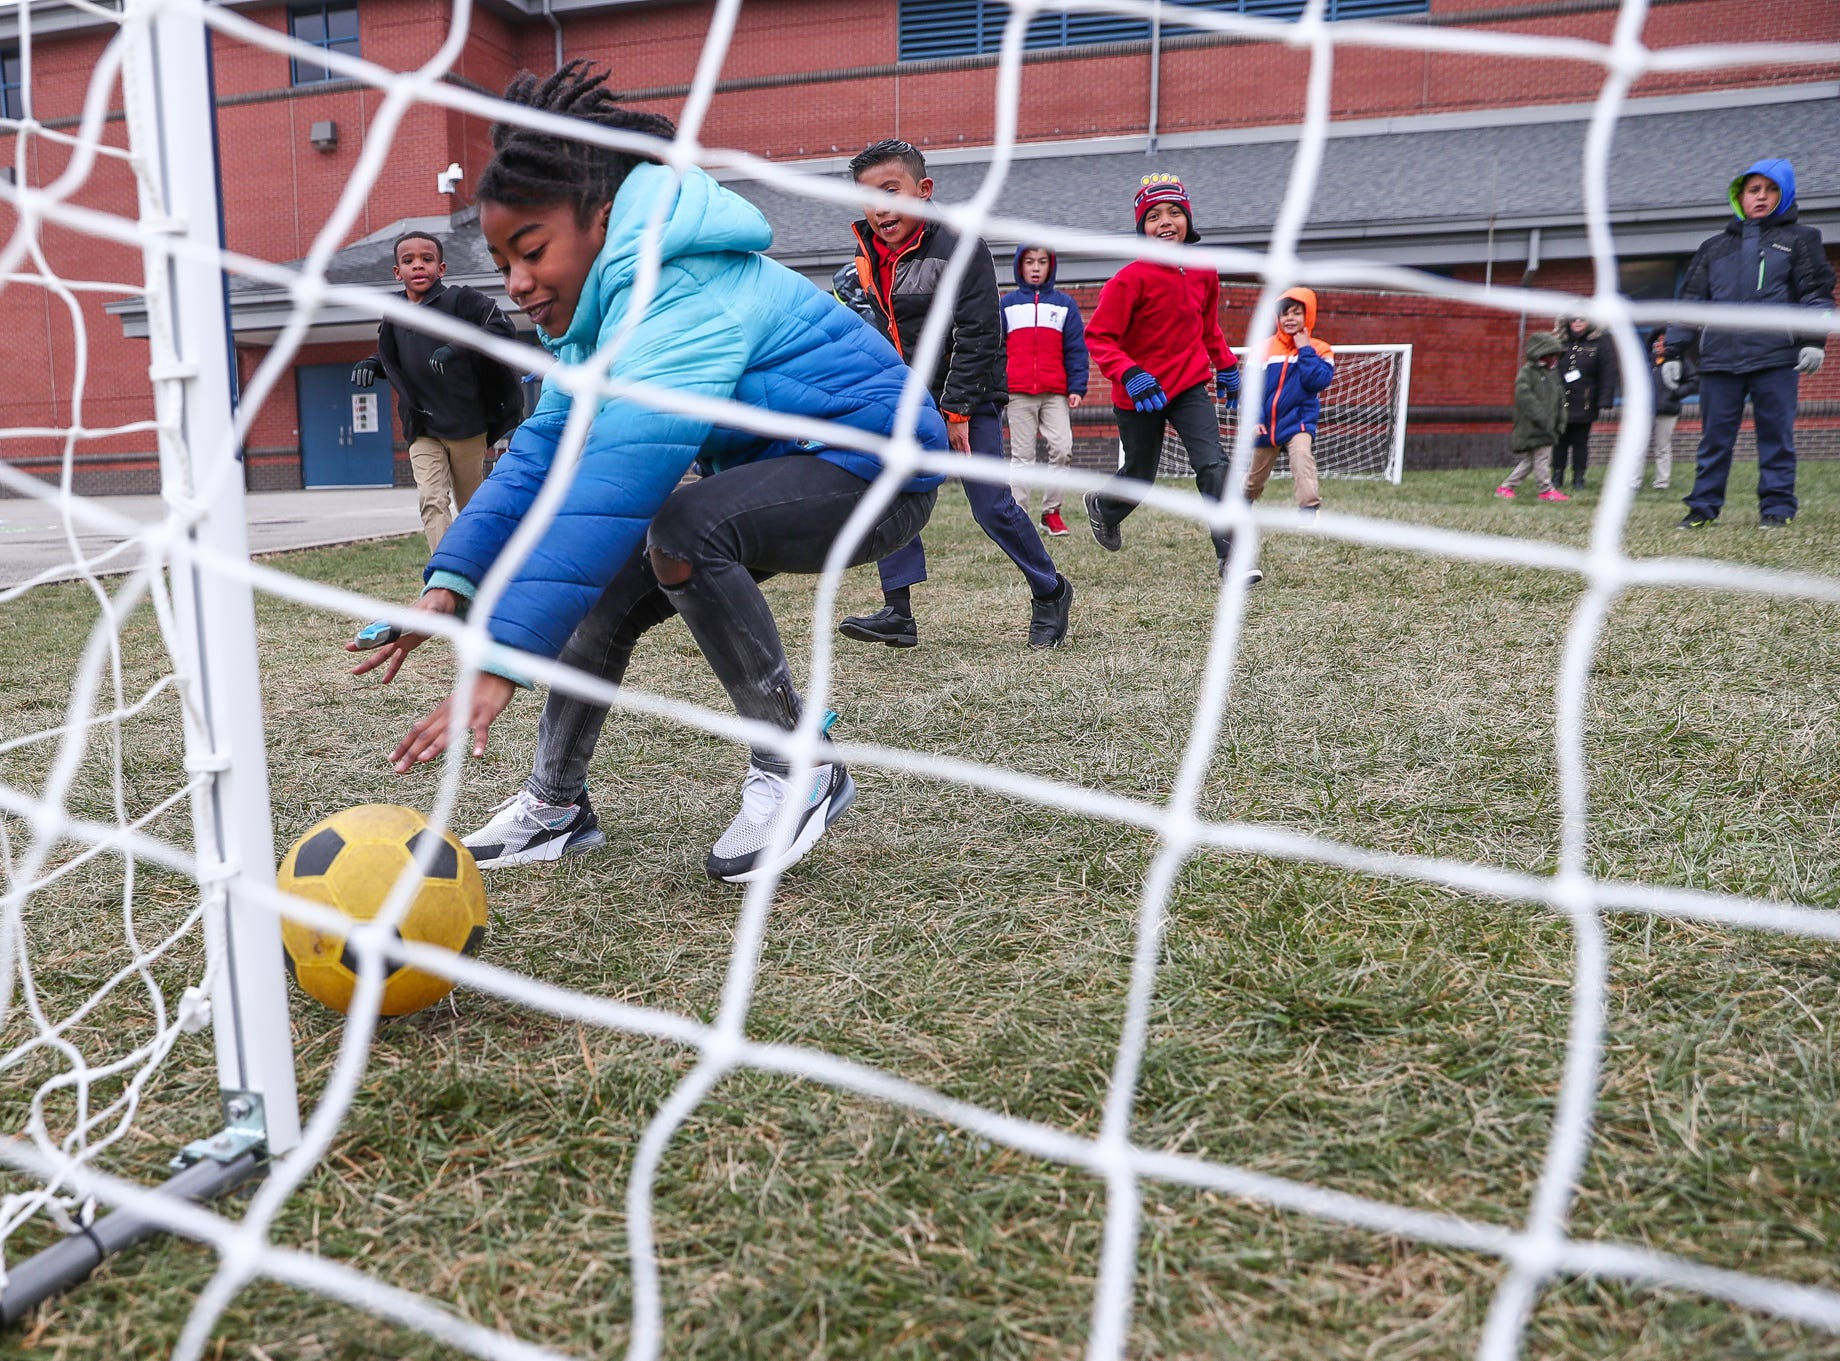 Ja'kiya Alvies, 8, plays goalie during a game of soccer at Sunny Heights Elementary School on Friday, Nov. 16, 2018.